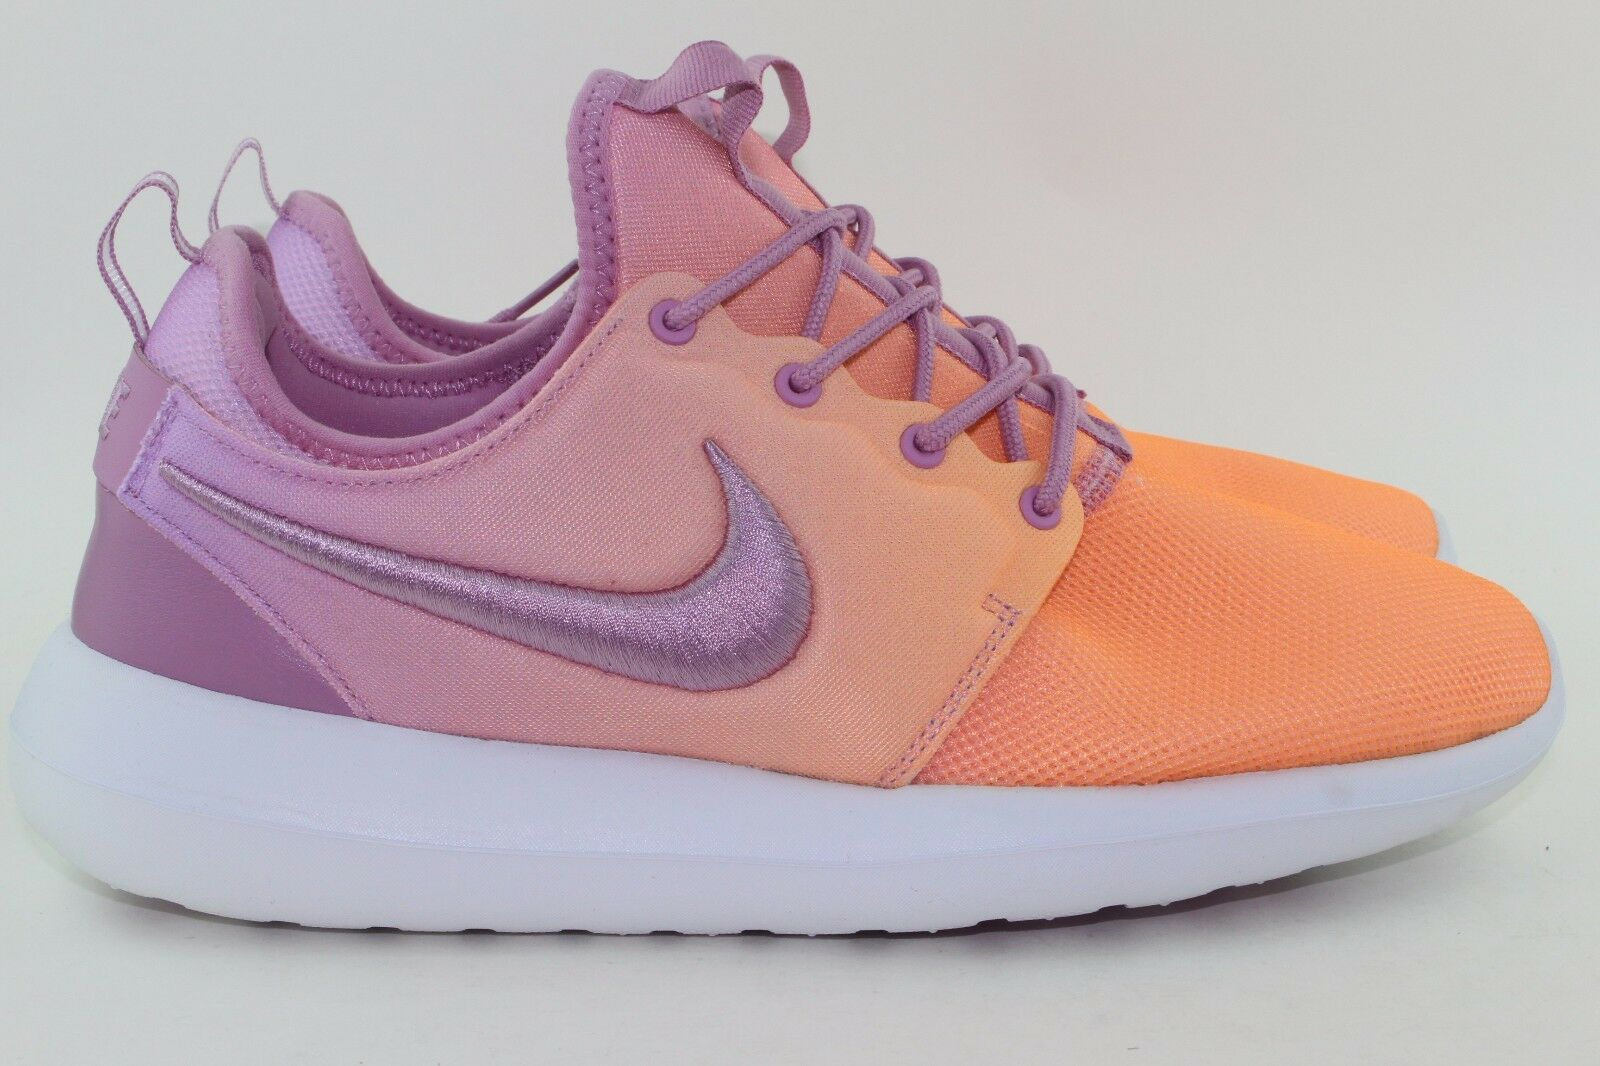 ROSHE TWO BR WOMAN SIZE 10.0 NEW SUNSET GLOW NEW RARE AUTHENTIC LIGHTWEIGHT